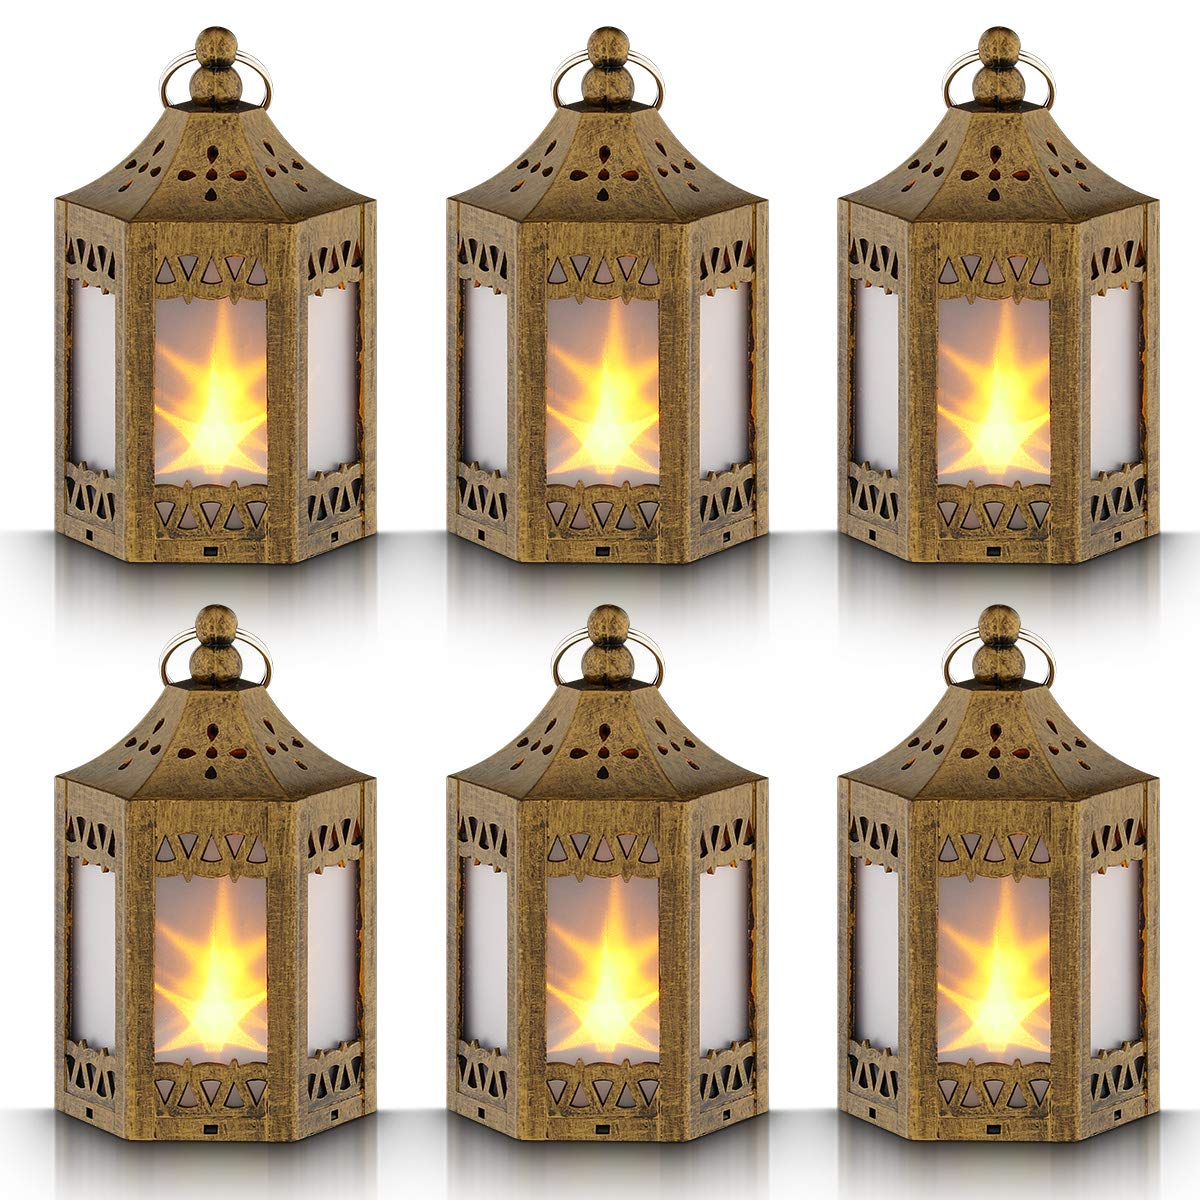 Mini Star Lantern with Flickering LED,Battery Included,Decorative Hanging Lantern,Christmas Decorative Lantern,Indoor Candle Lantern,Battery Lantern Indoor Use,Zkee(Set of 6 Copper Brushed)